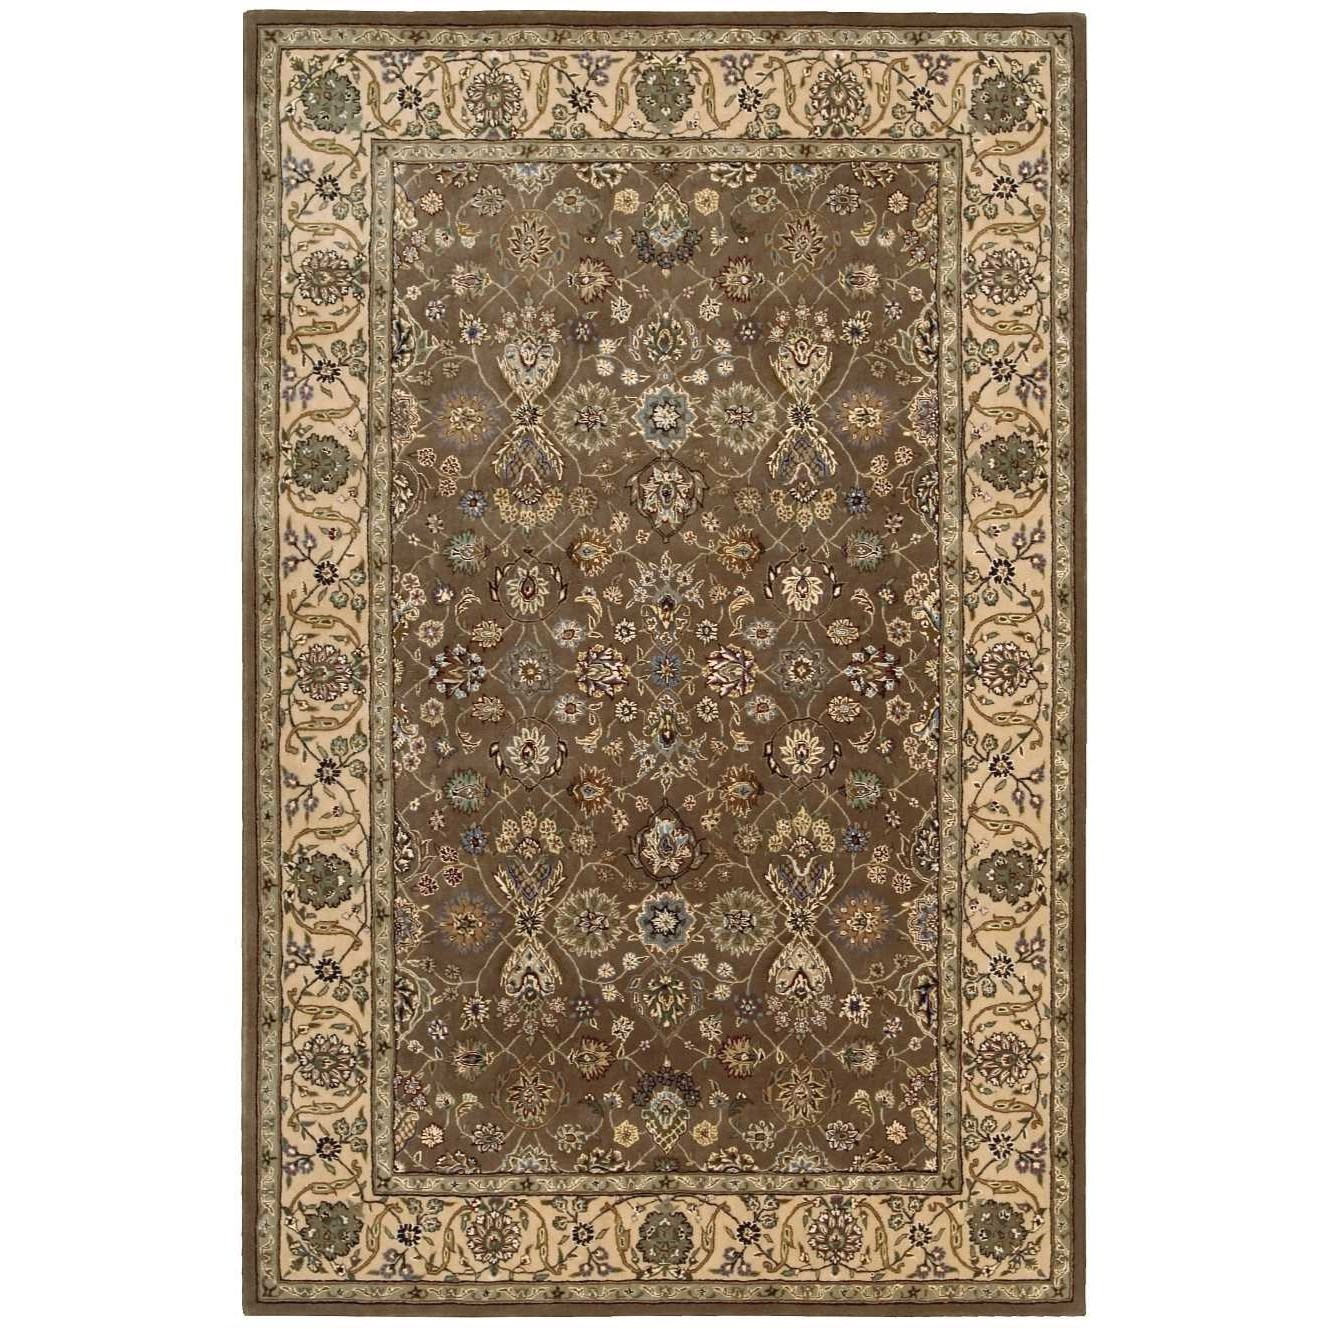 Nourison 2000 2000 2091 Mushroom 6'x9'  Area Rug by Nourison at Home Collections Furniture